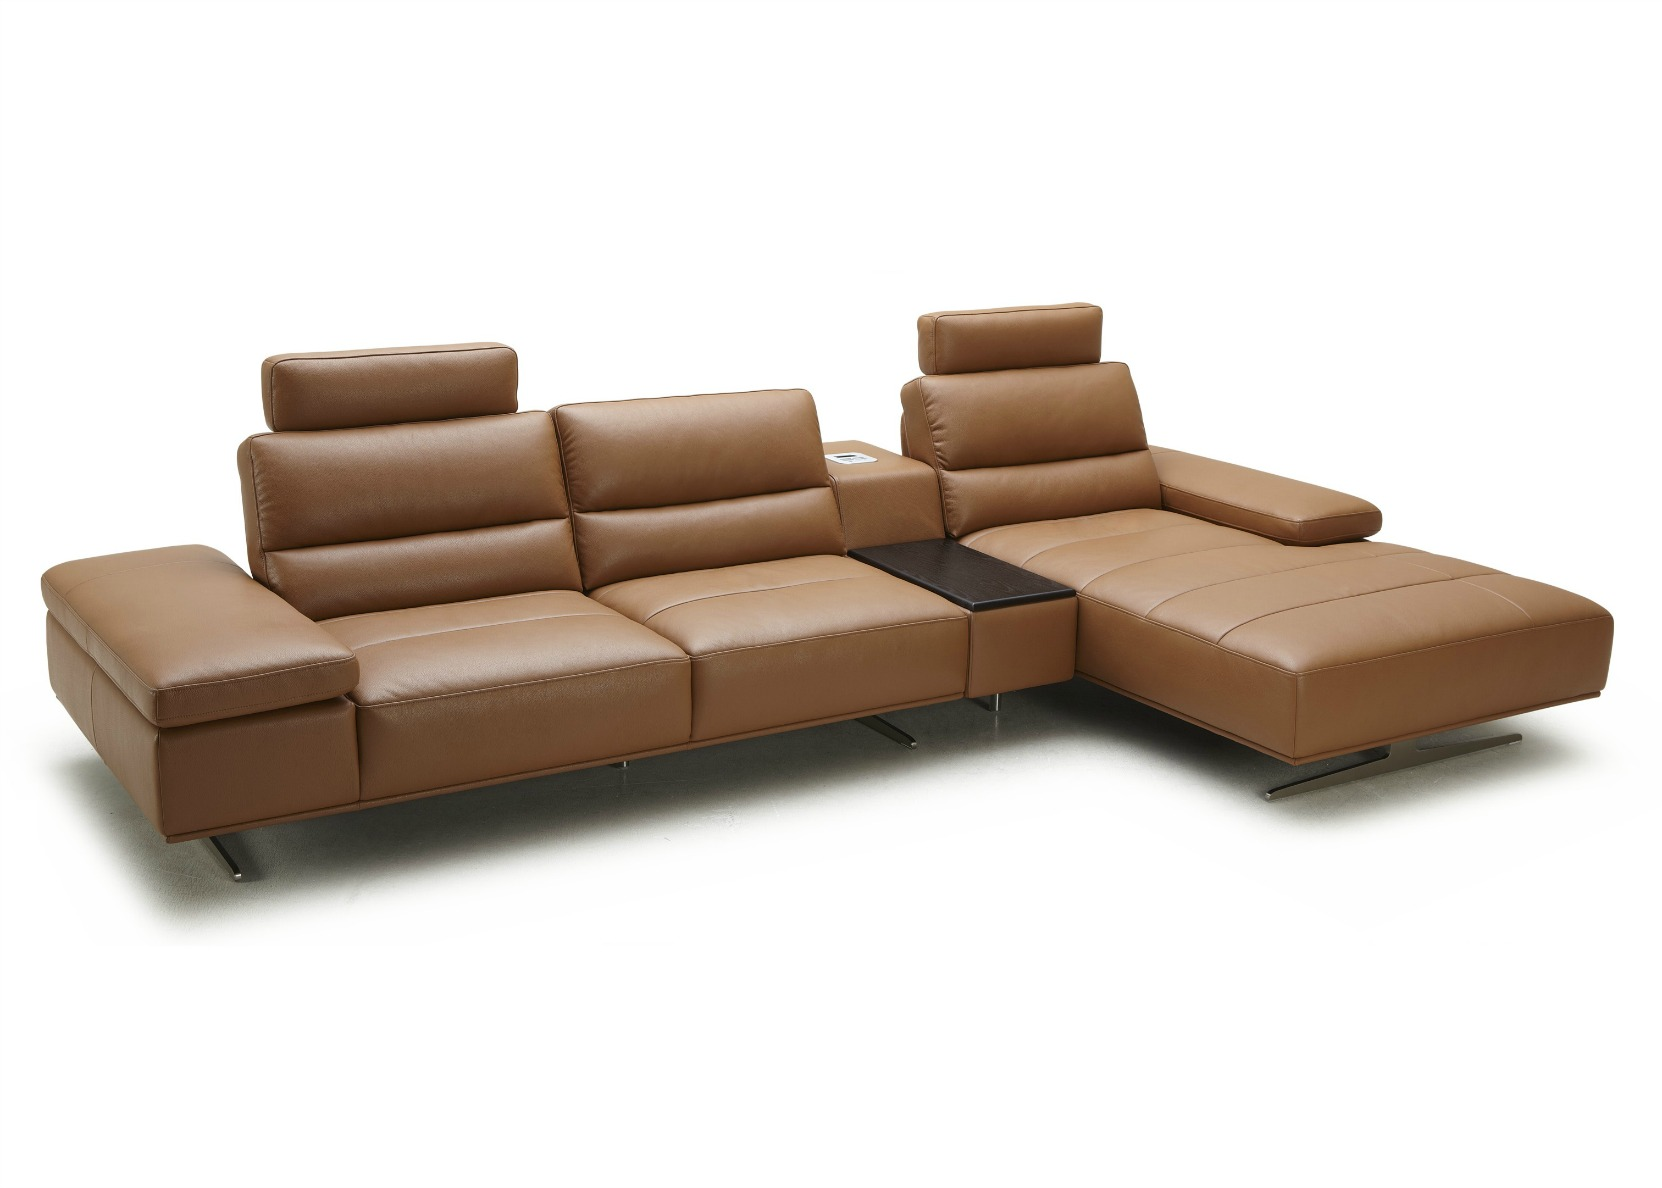 Charmant Lounge Sofa With Sliding Back Rest ...